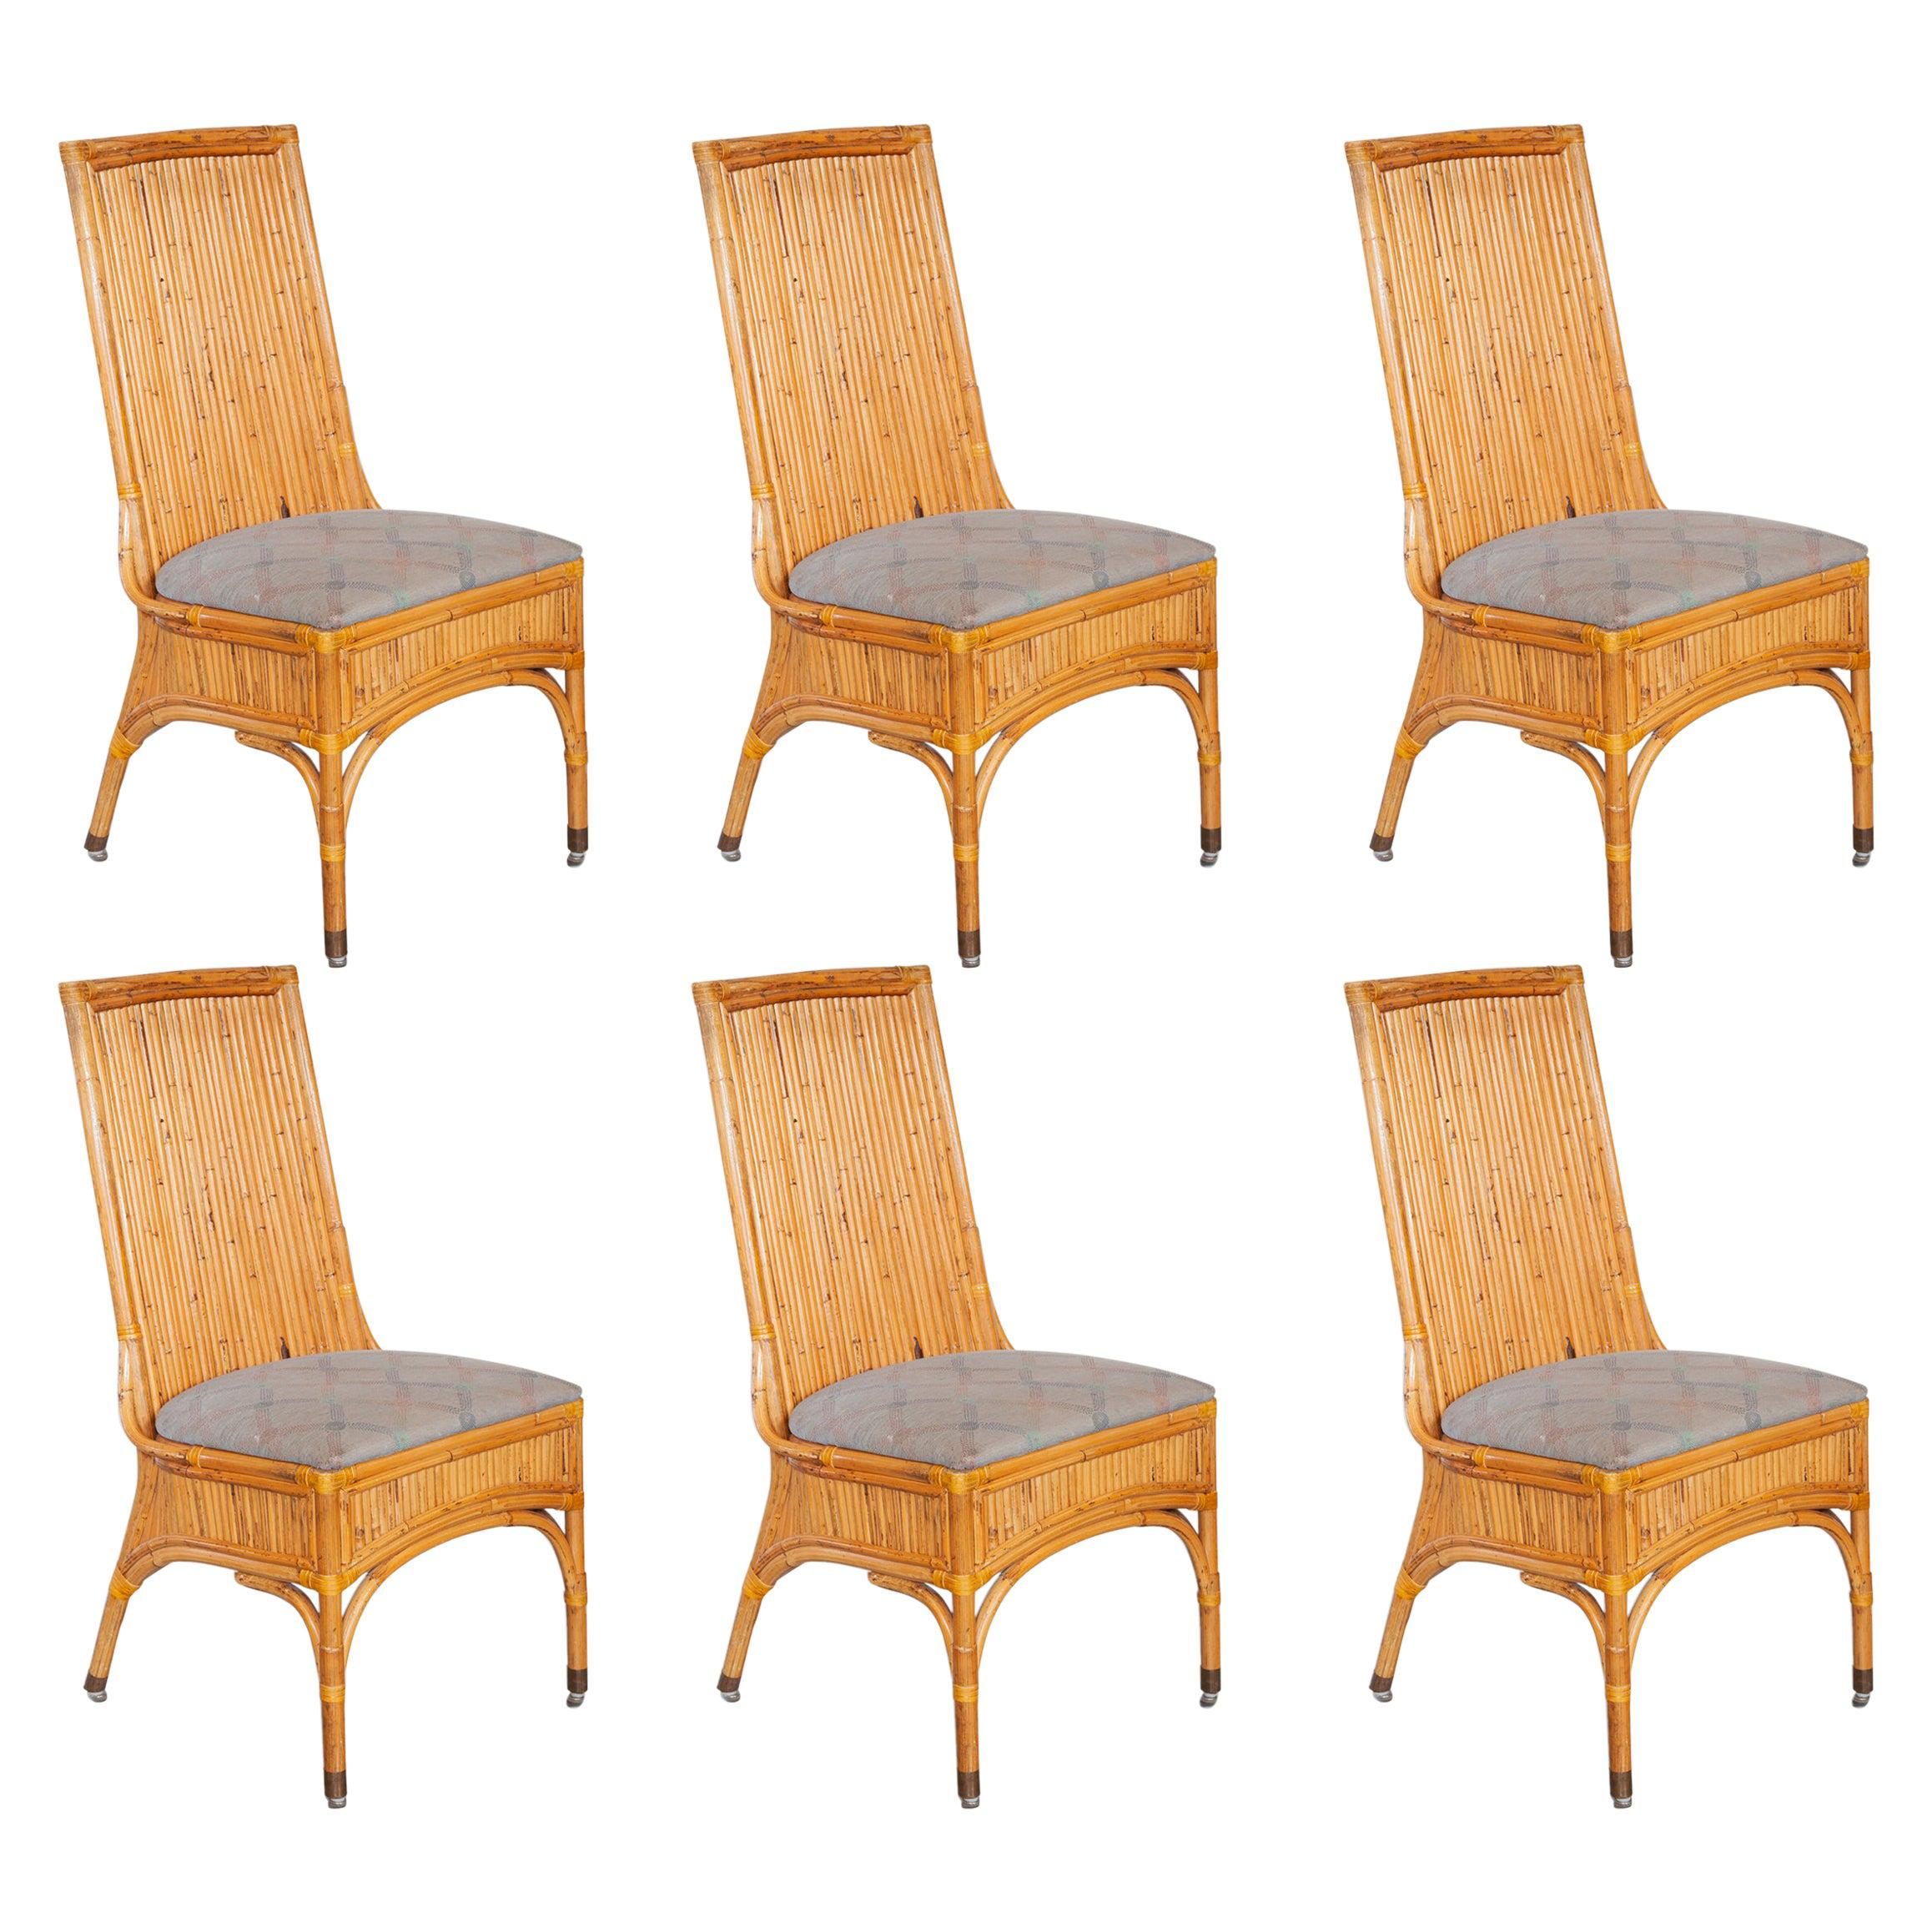 Set of Six Bamboo Dining Chairs, Italy, 1970s